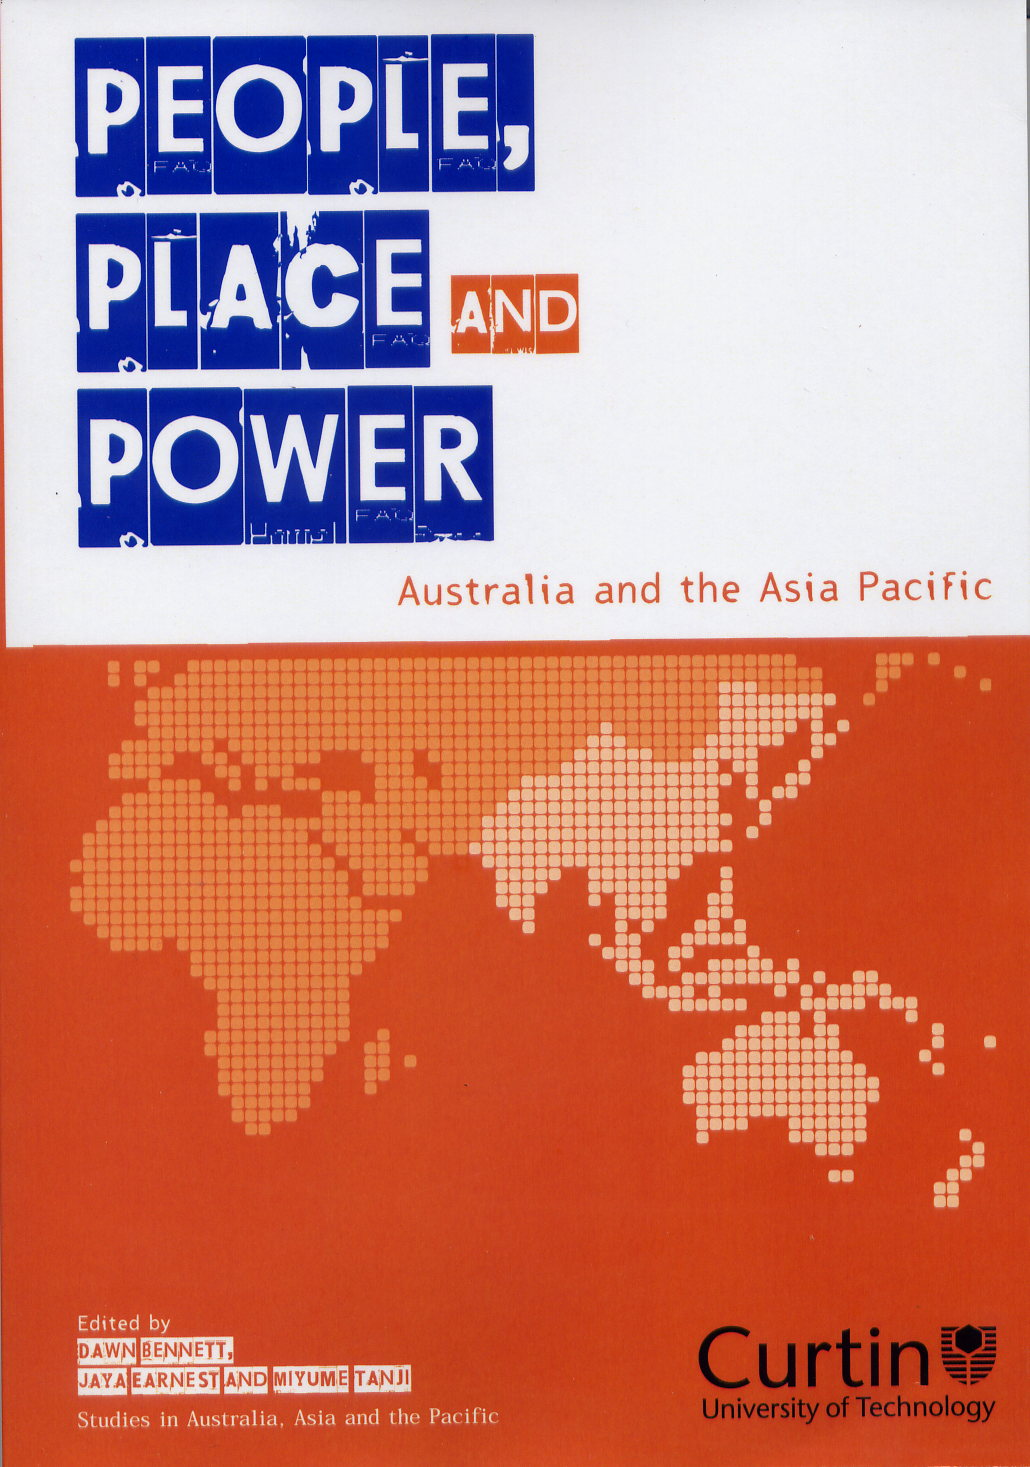 People, Place and Power edited by Dawn Bennett, Jaya Earnest and Miyume Tanji